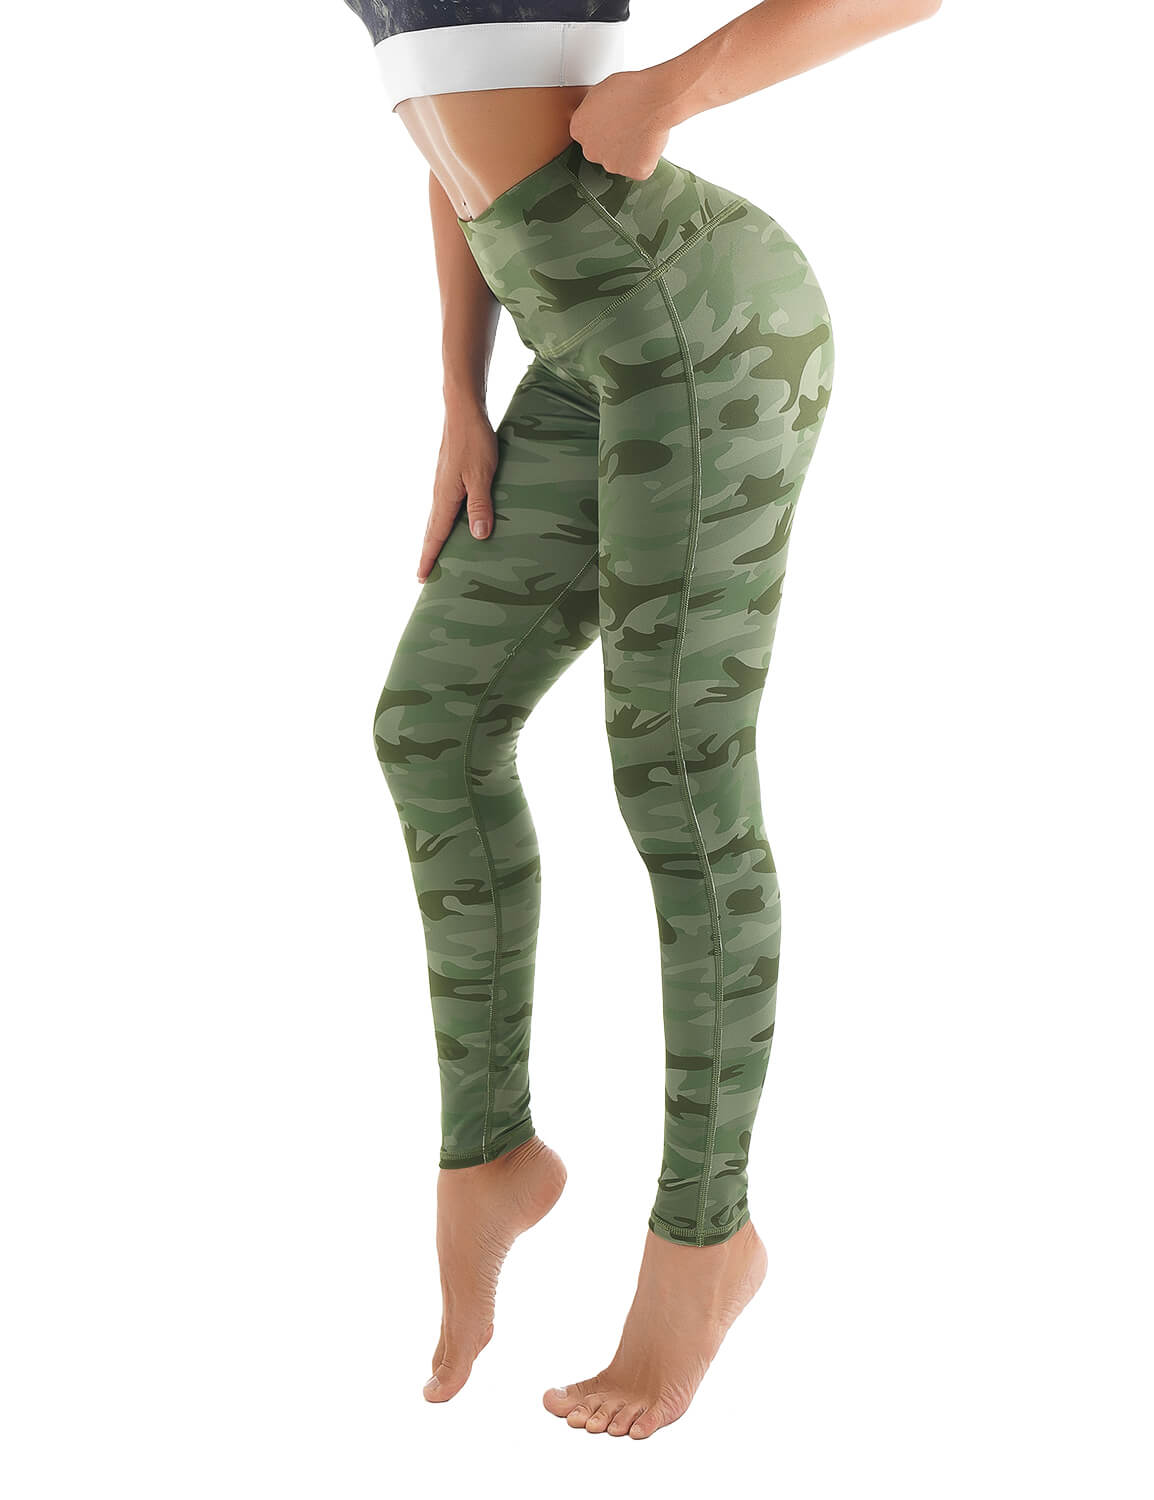 Blooming Jelly_Athletic Style Camo Print Workout Leggings_Camouflage Print_257261_28_Women Sportswear Comfy Outfits_Bottoms_Leggings